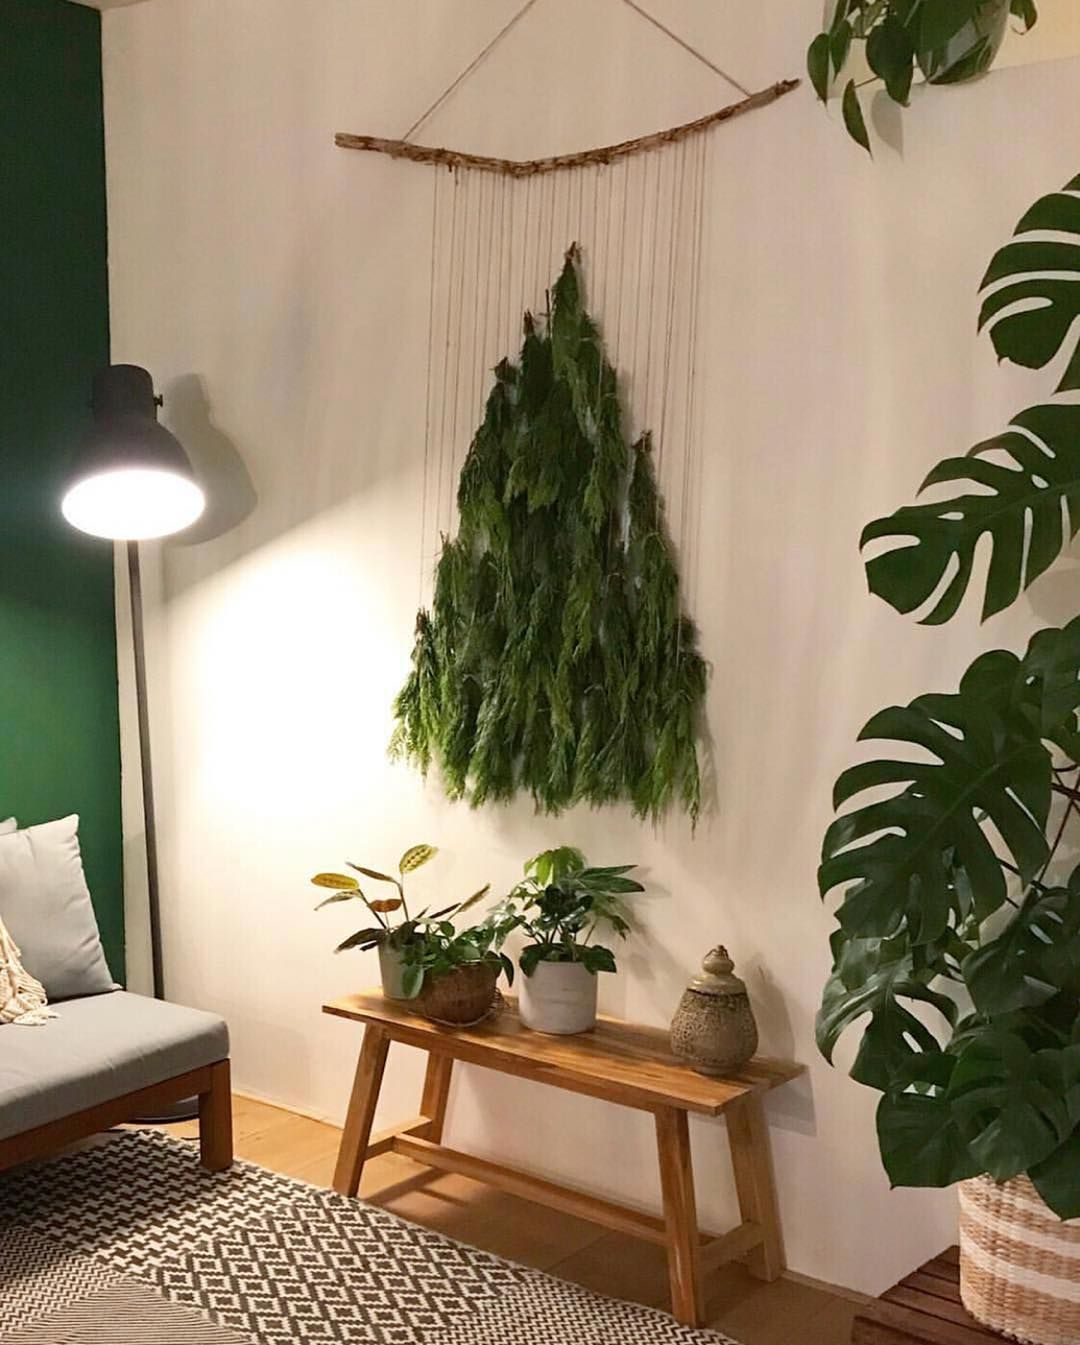 Melbourne Retail Showroom On Instagram Here S Some Christmas Tree Inspirat Christmas Greenery Decor Alternative Christmas Tree Christmas Tree Inspiration